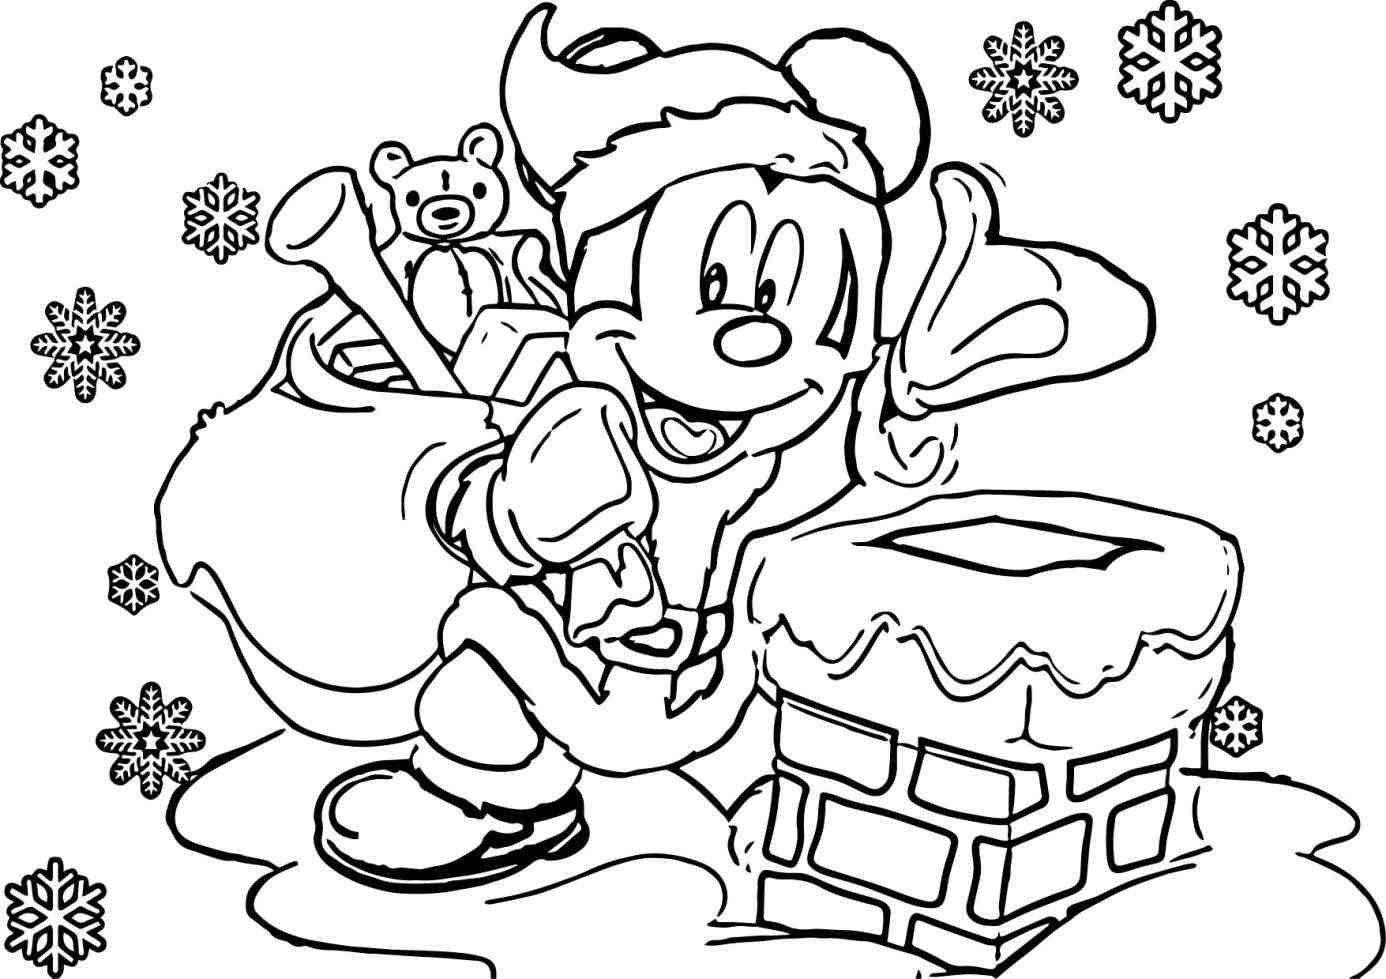 Asombroso Charlie Brown Christmas Coloring Pages Imprimibles Viñeta ...